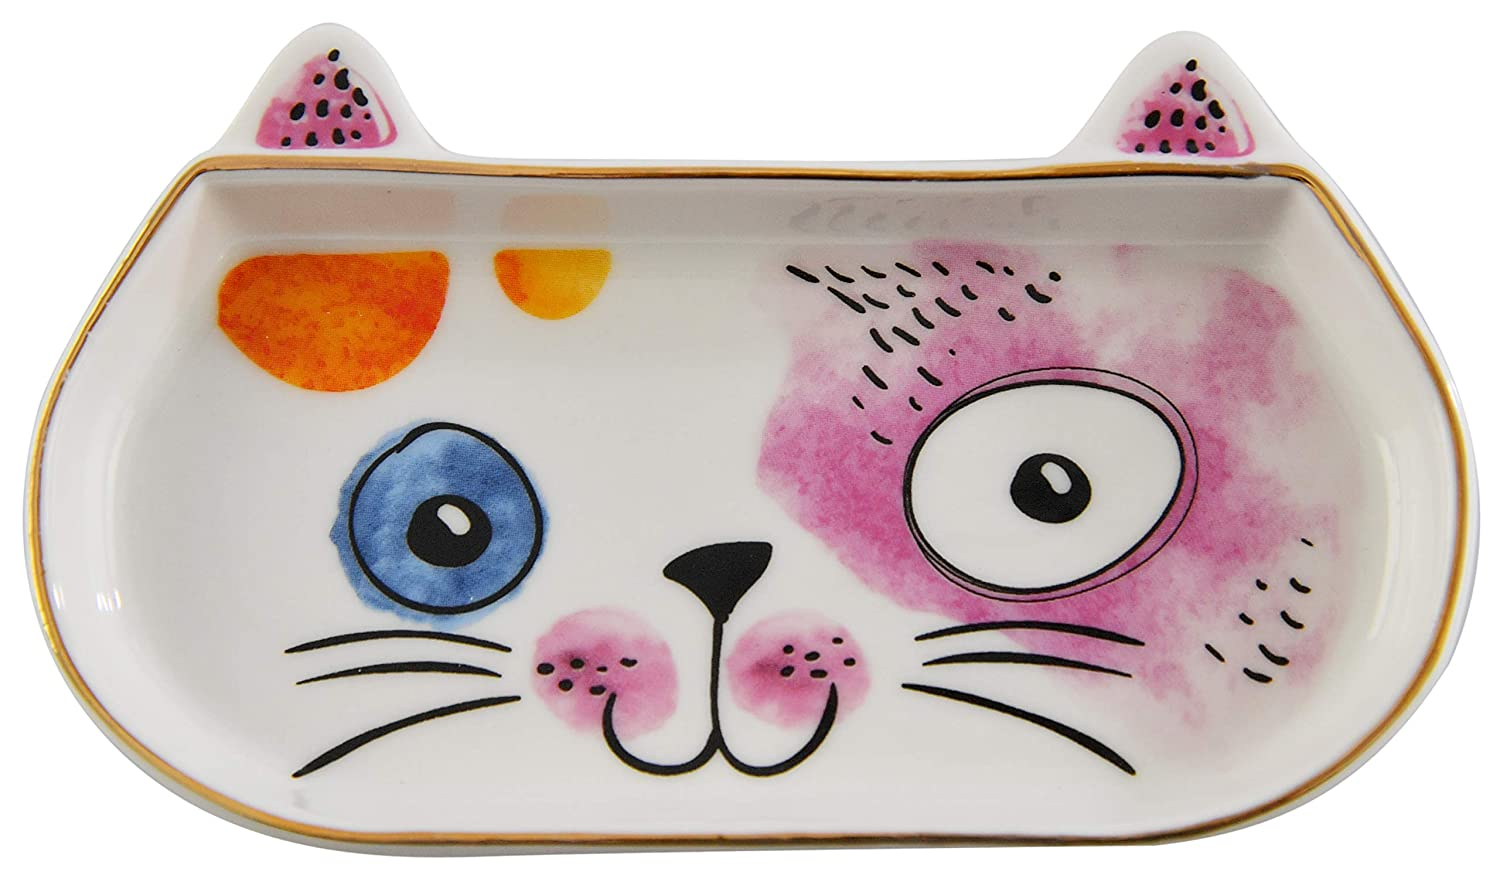 Home-X Cat Lover Ceramic Trinket Dish, Colorful Home Decor for Bedside Table, Jewelry Dish for Rings-Multicolor